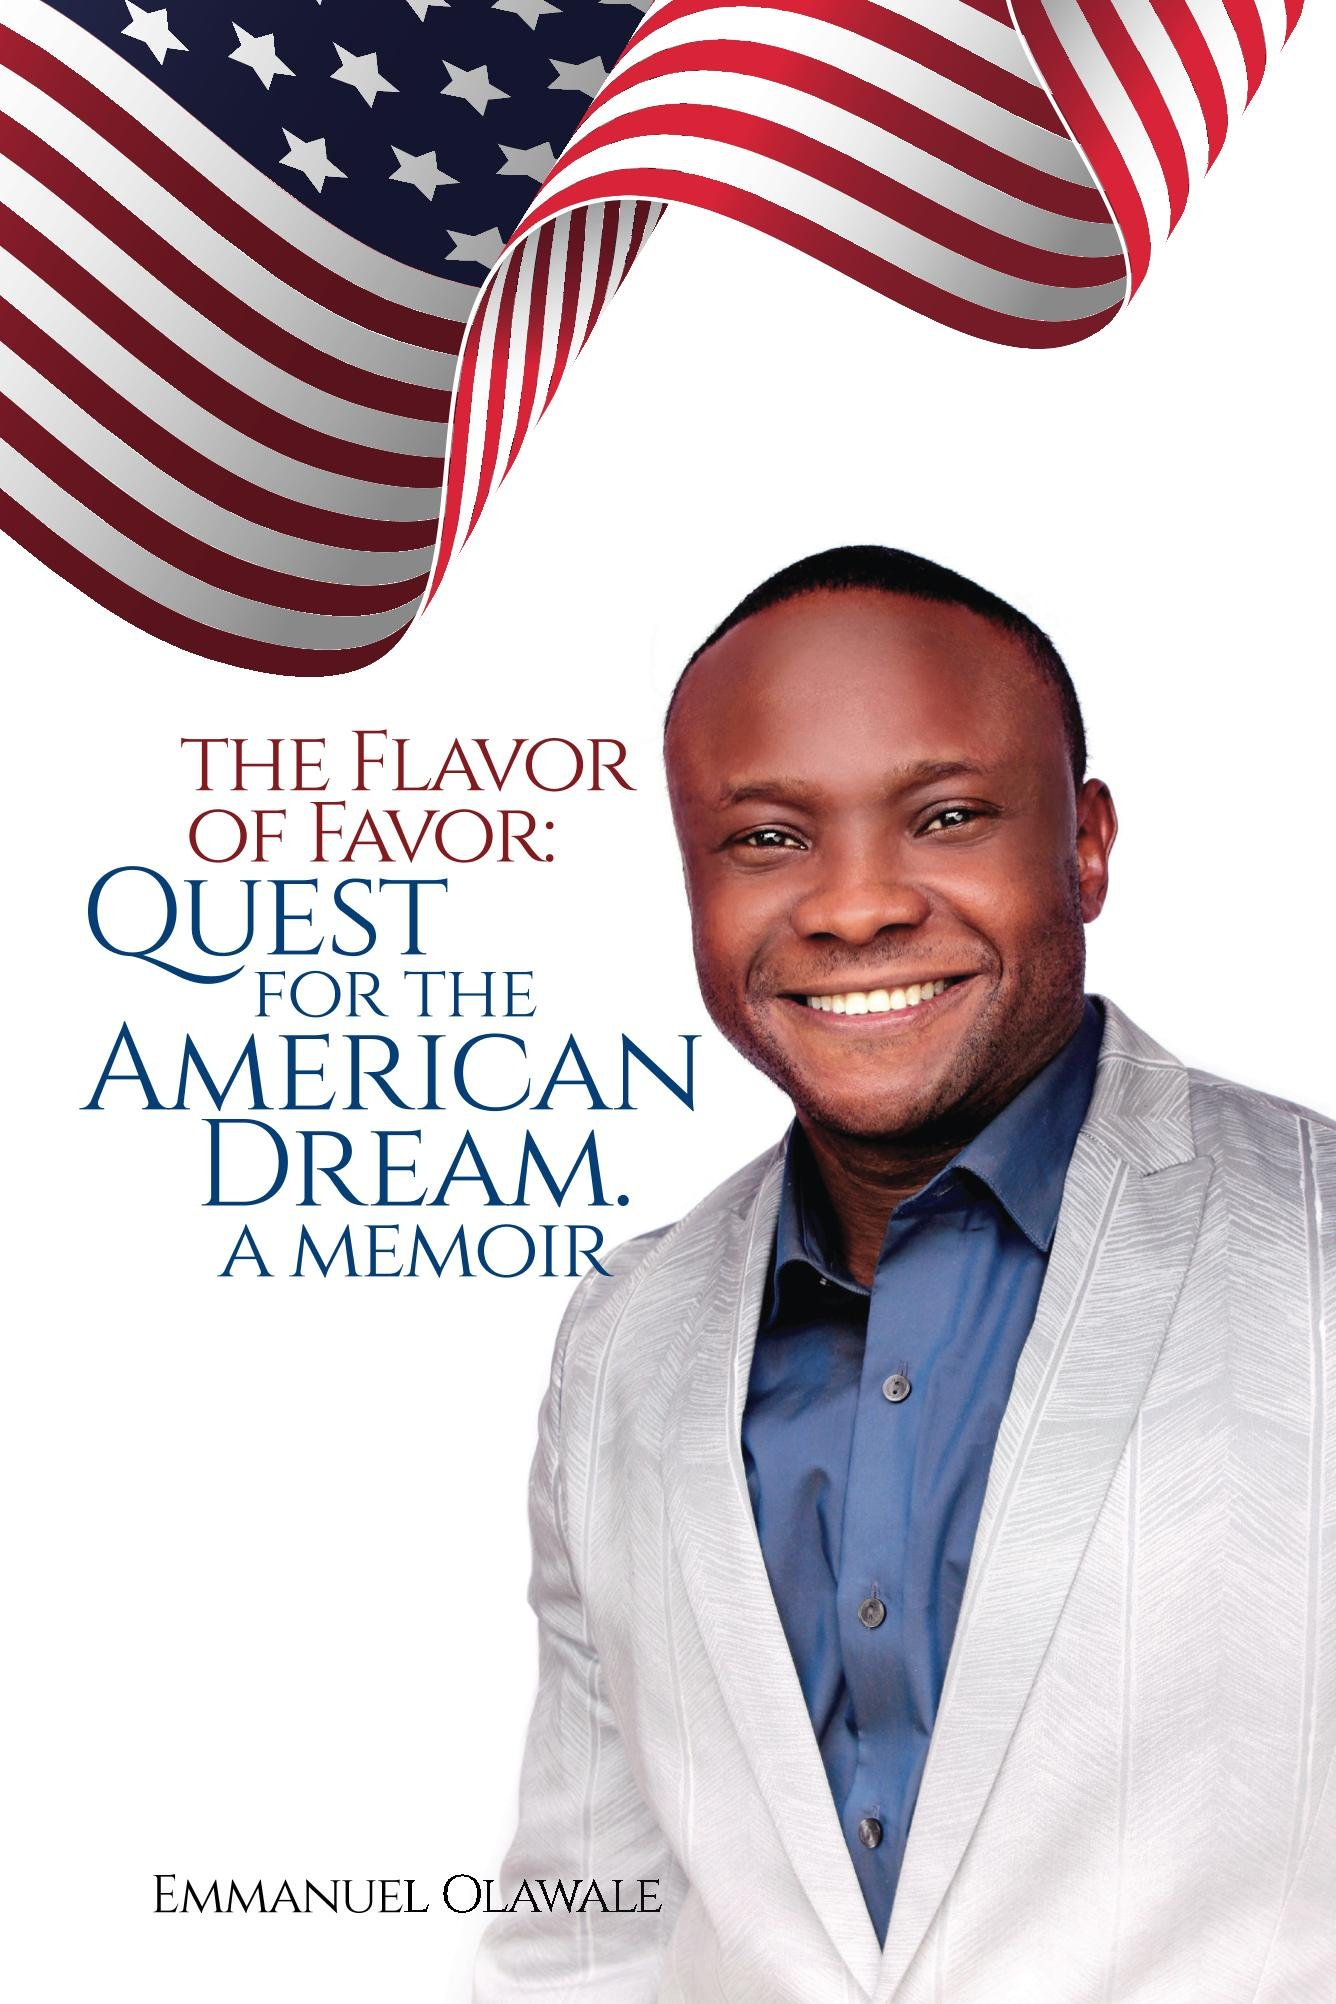 Image OfThe Flavor Of Favor: Quest For The American Dream. A Memoir